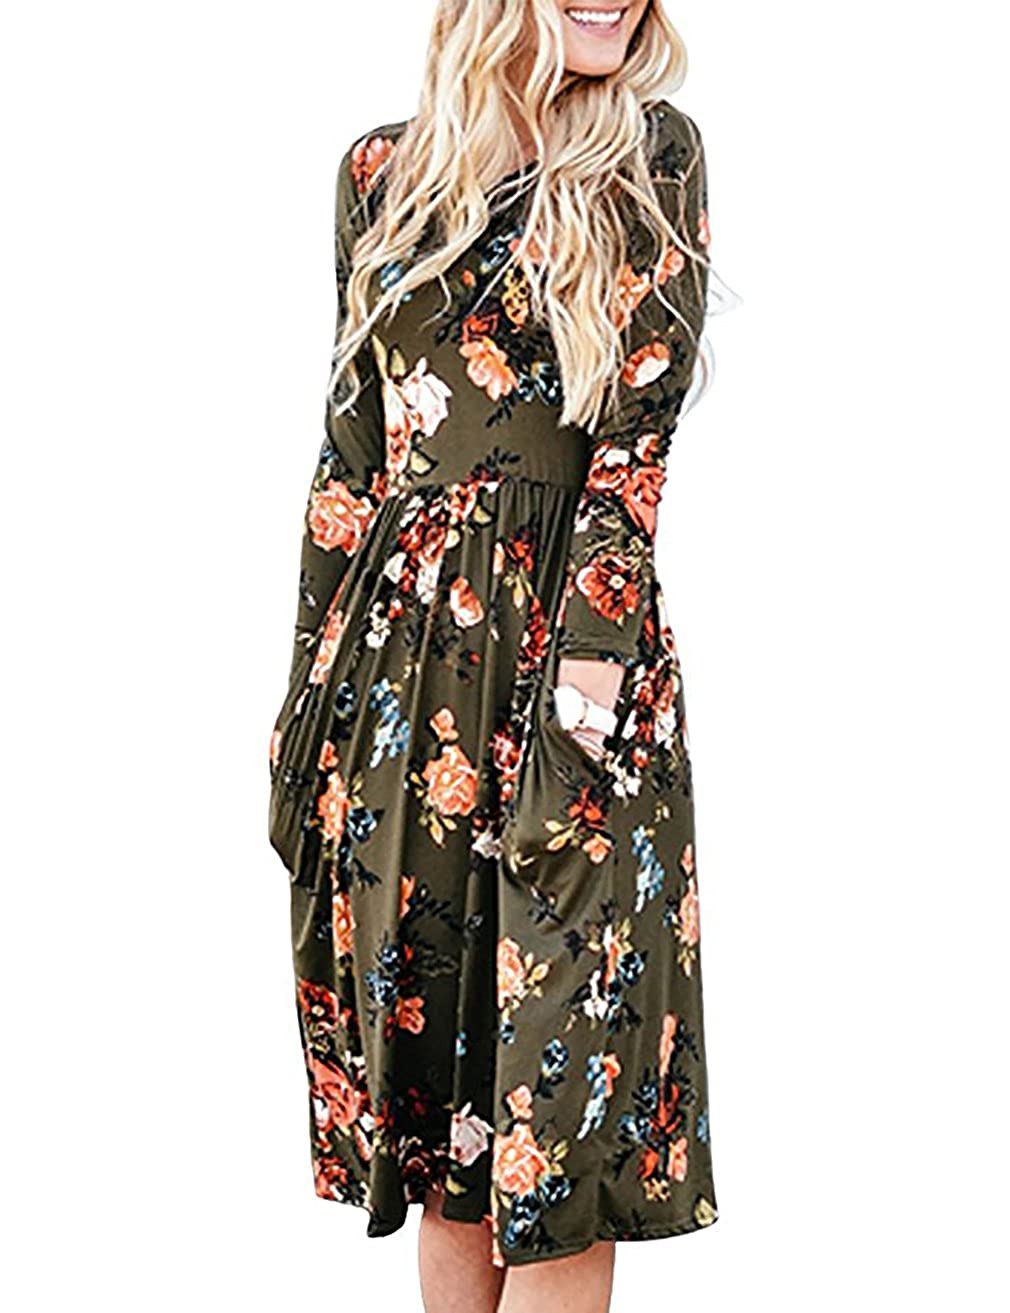 Green Sunerlory Women's Long Sleeve Swing Pleated Floral Tshirt Dress with Pockets